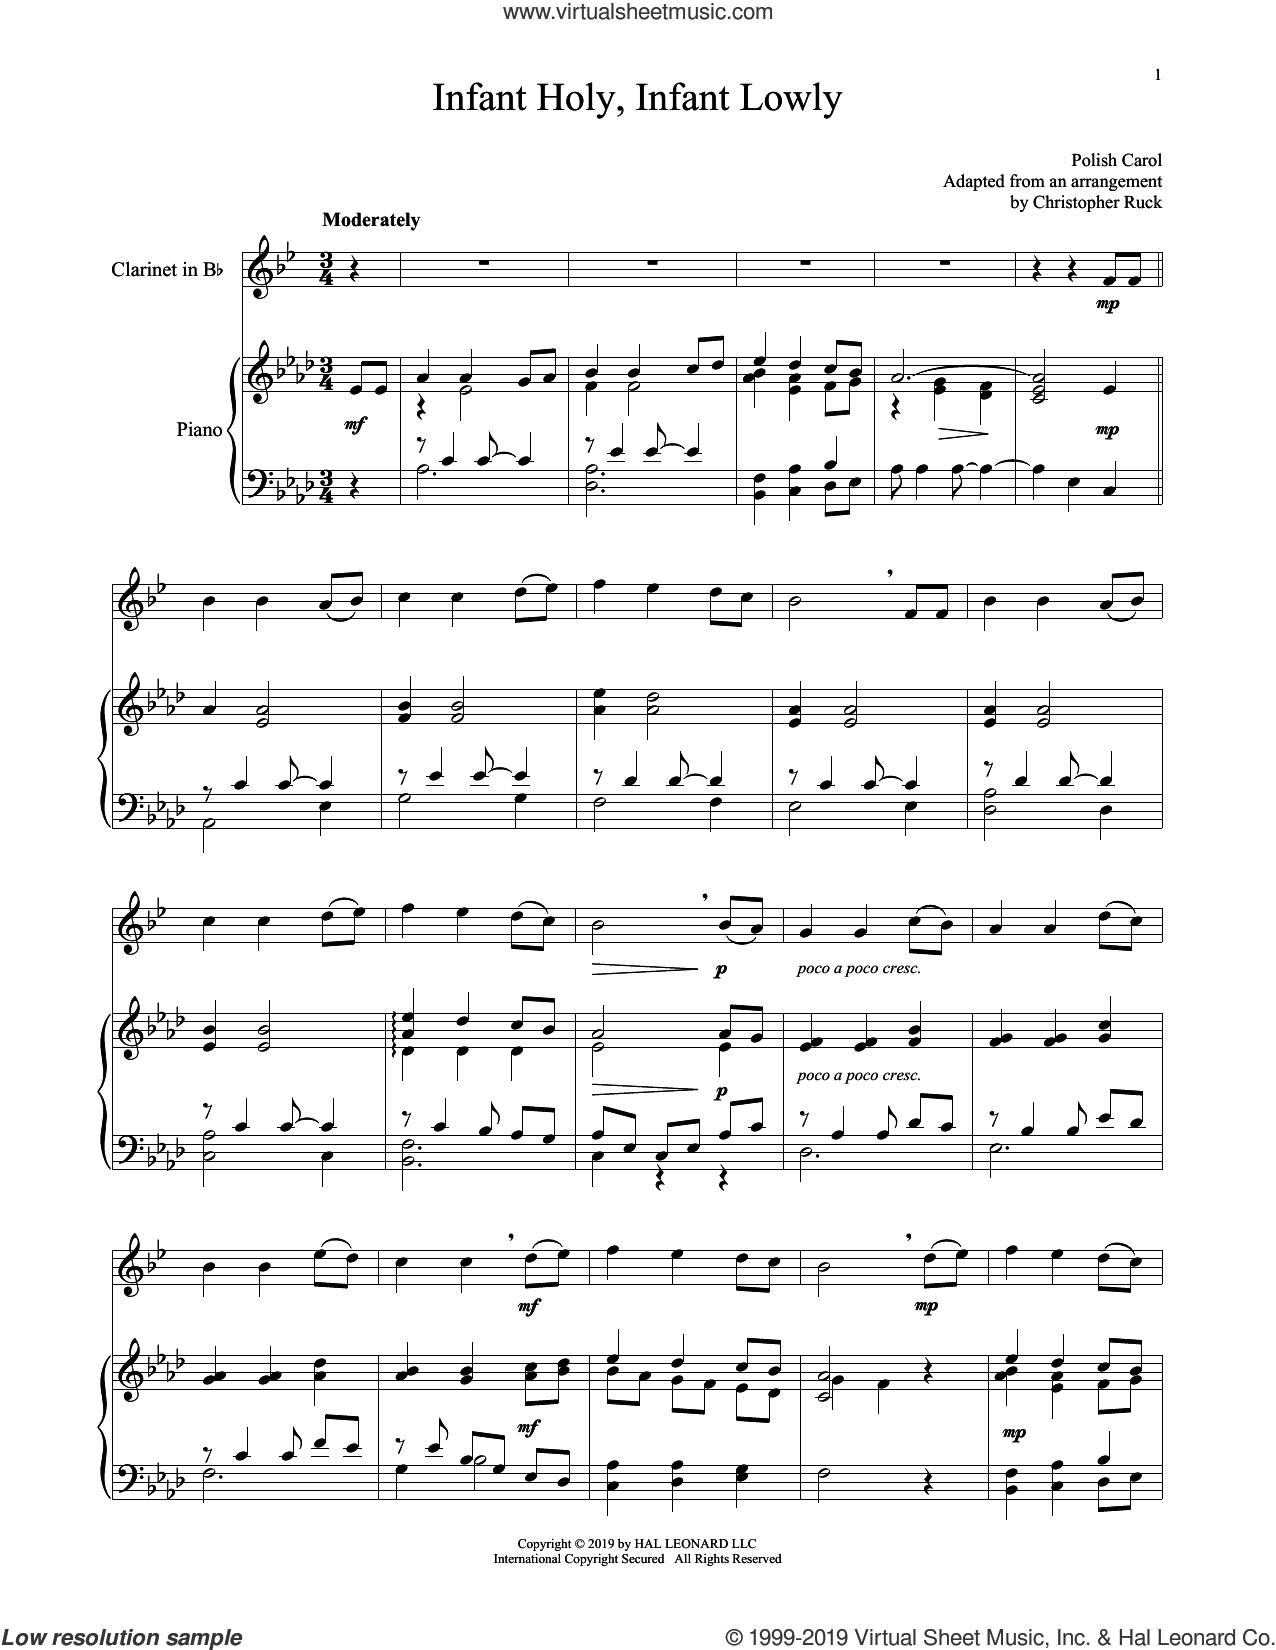 Infant Holy, Infant Lowly sheet music for clarinet and piano by Edith M.G. Reed and Miscellaneous, intermediate skill level